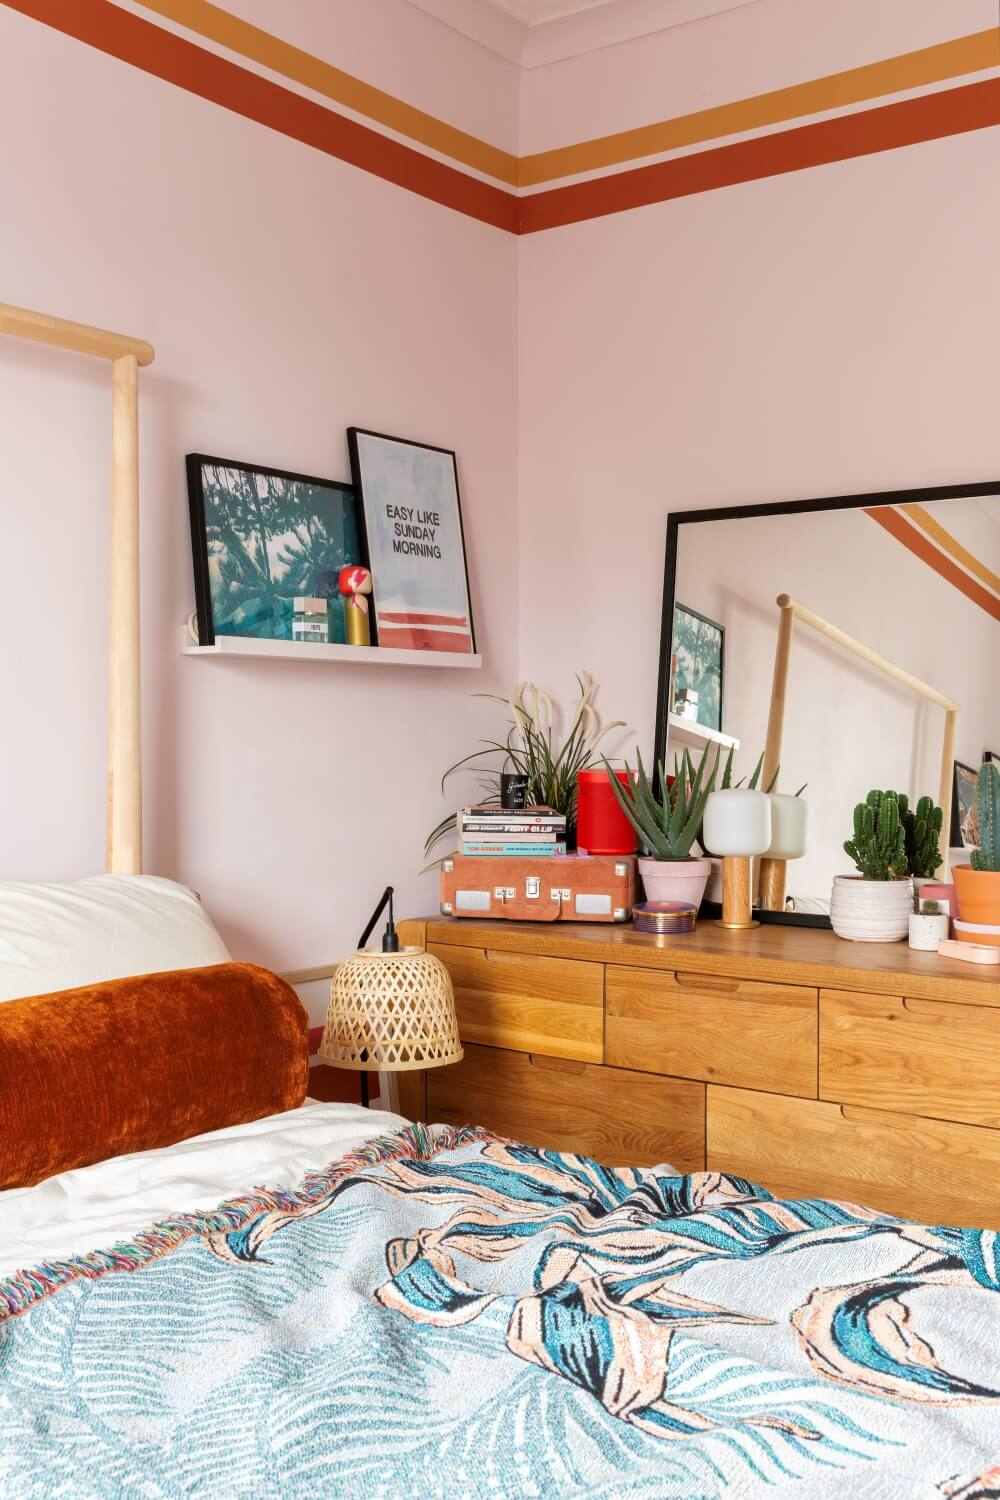 A colourful rental: A corner view of a bed and dresser with art, mirrors and plants